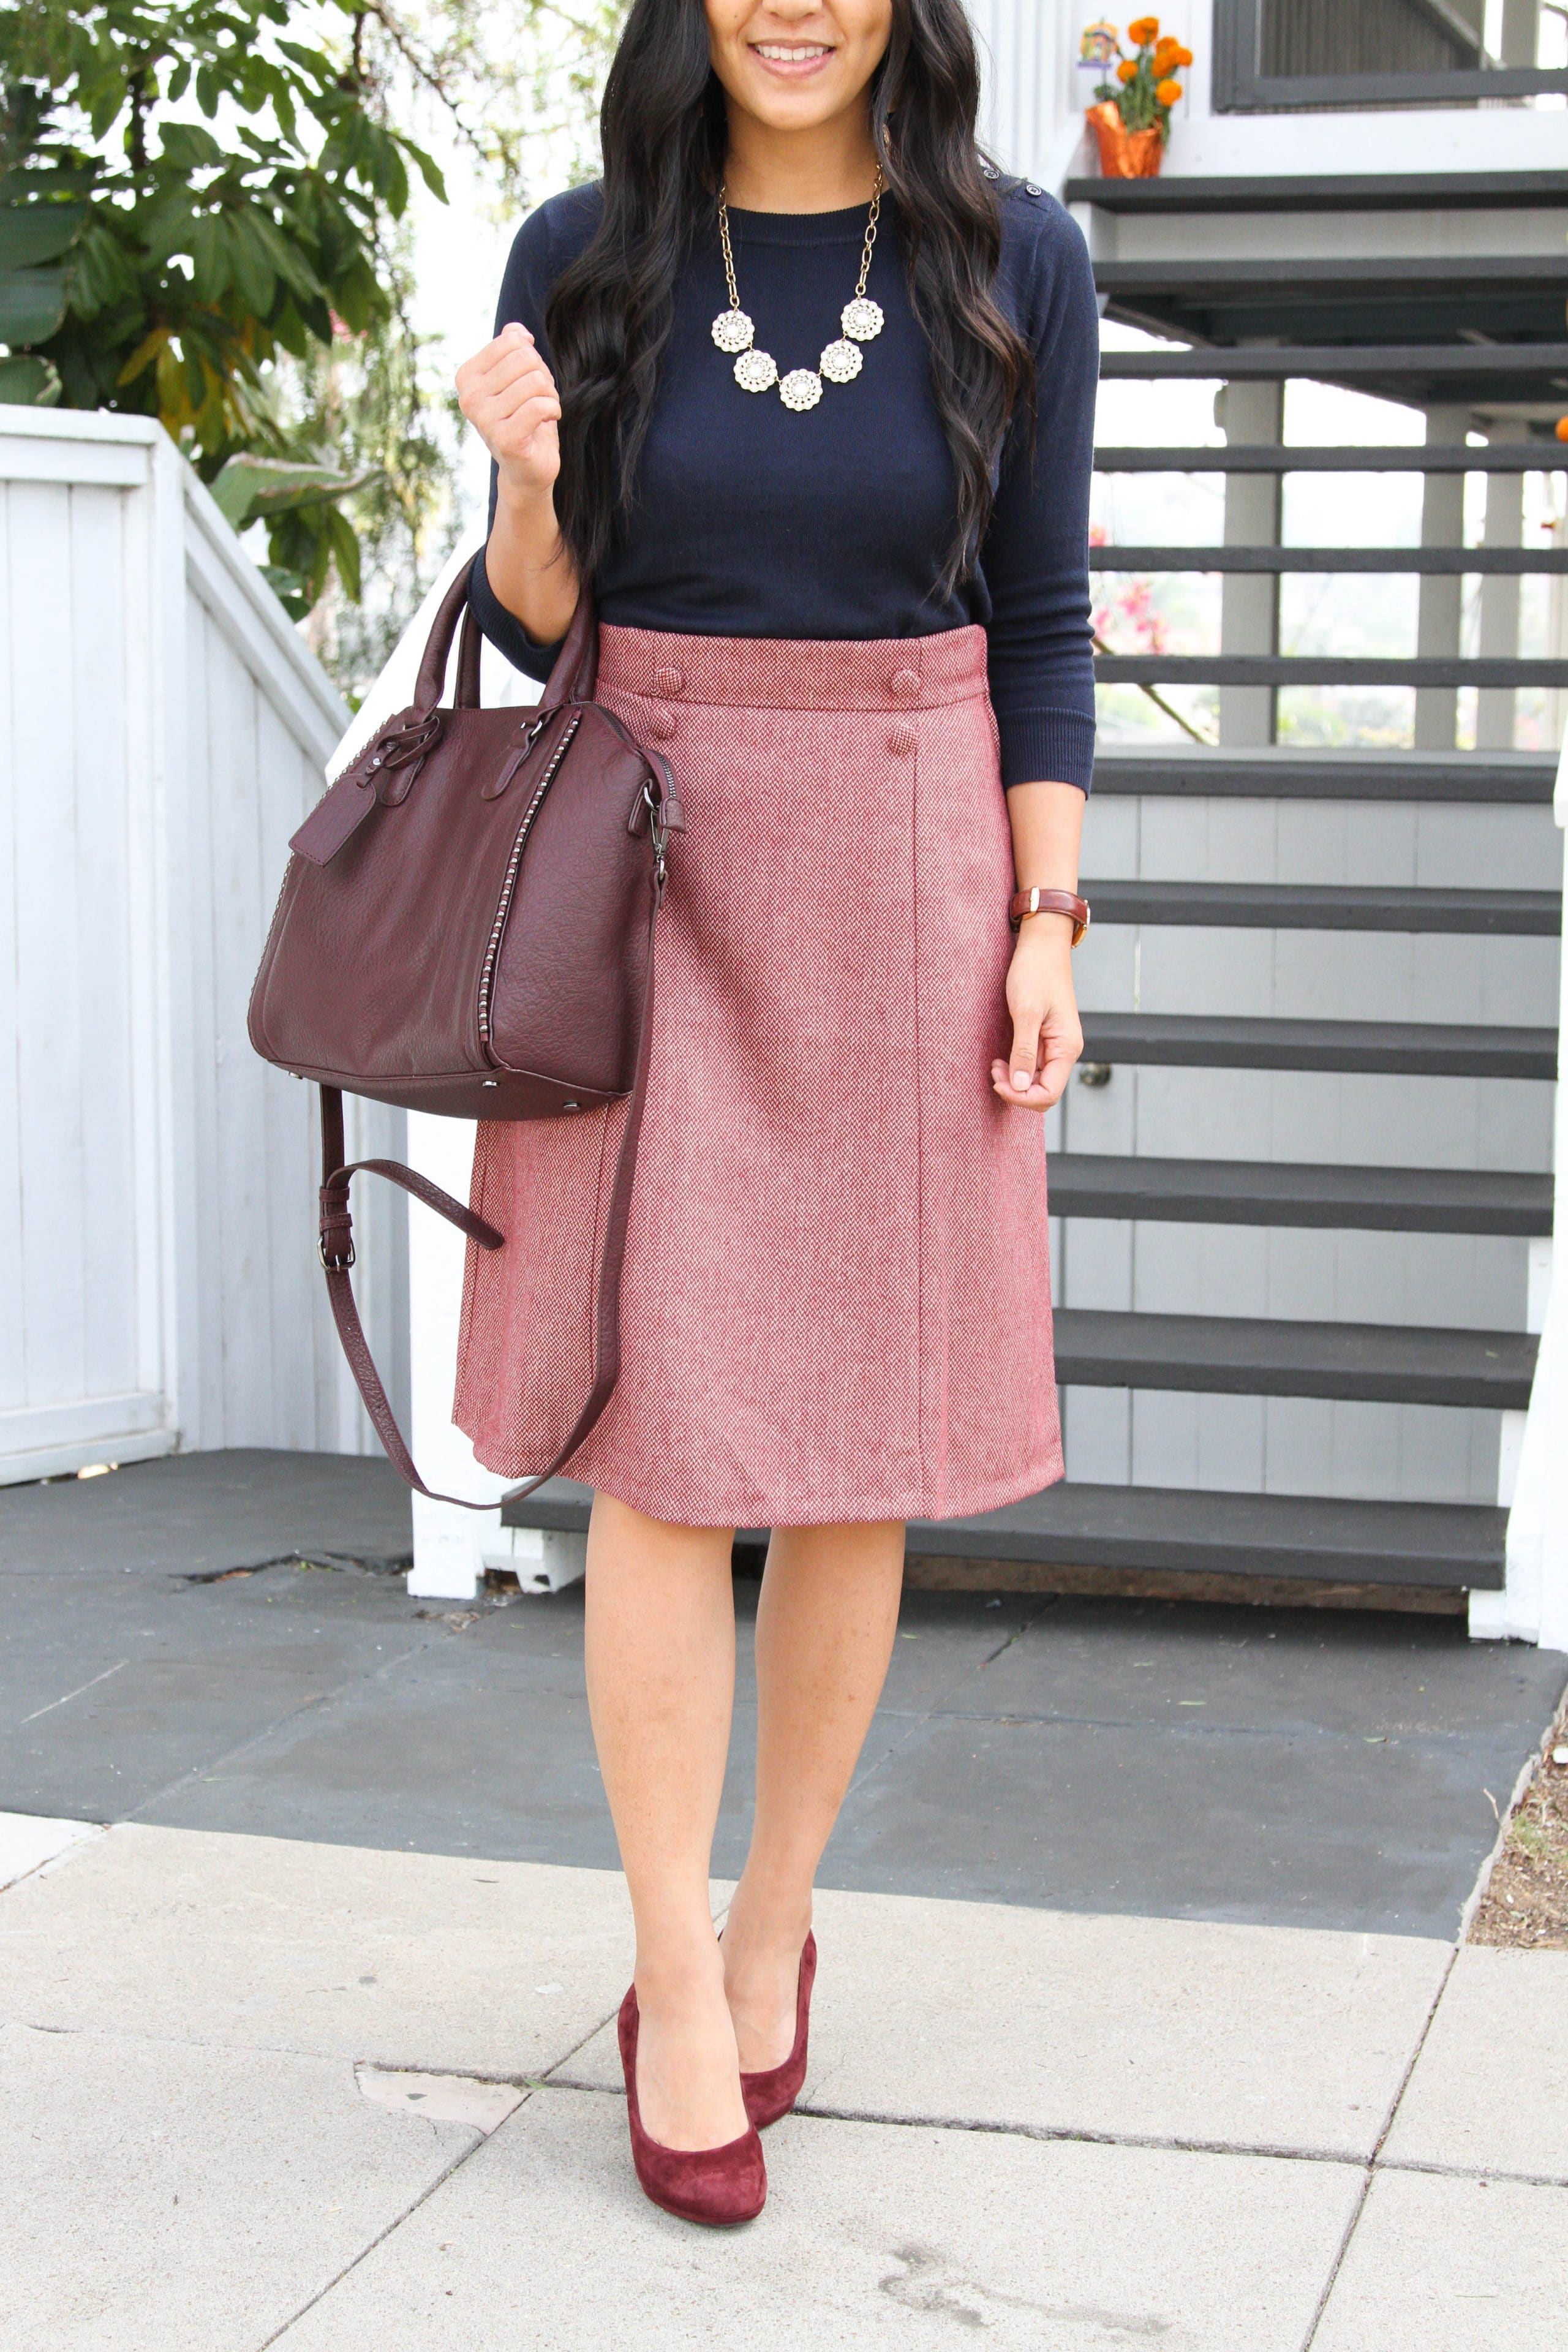 Maroon Heels + A-Line Skirt + Navy Sweater + Statement Necklace